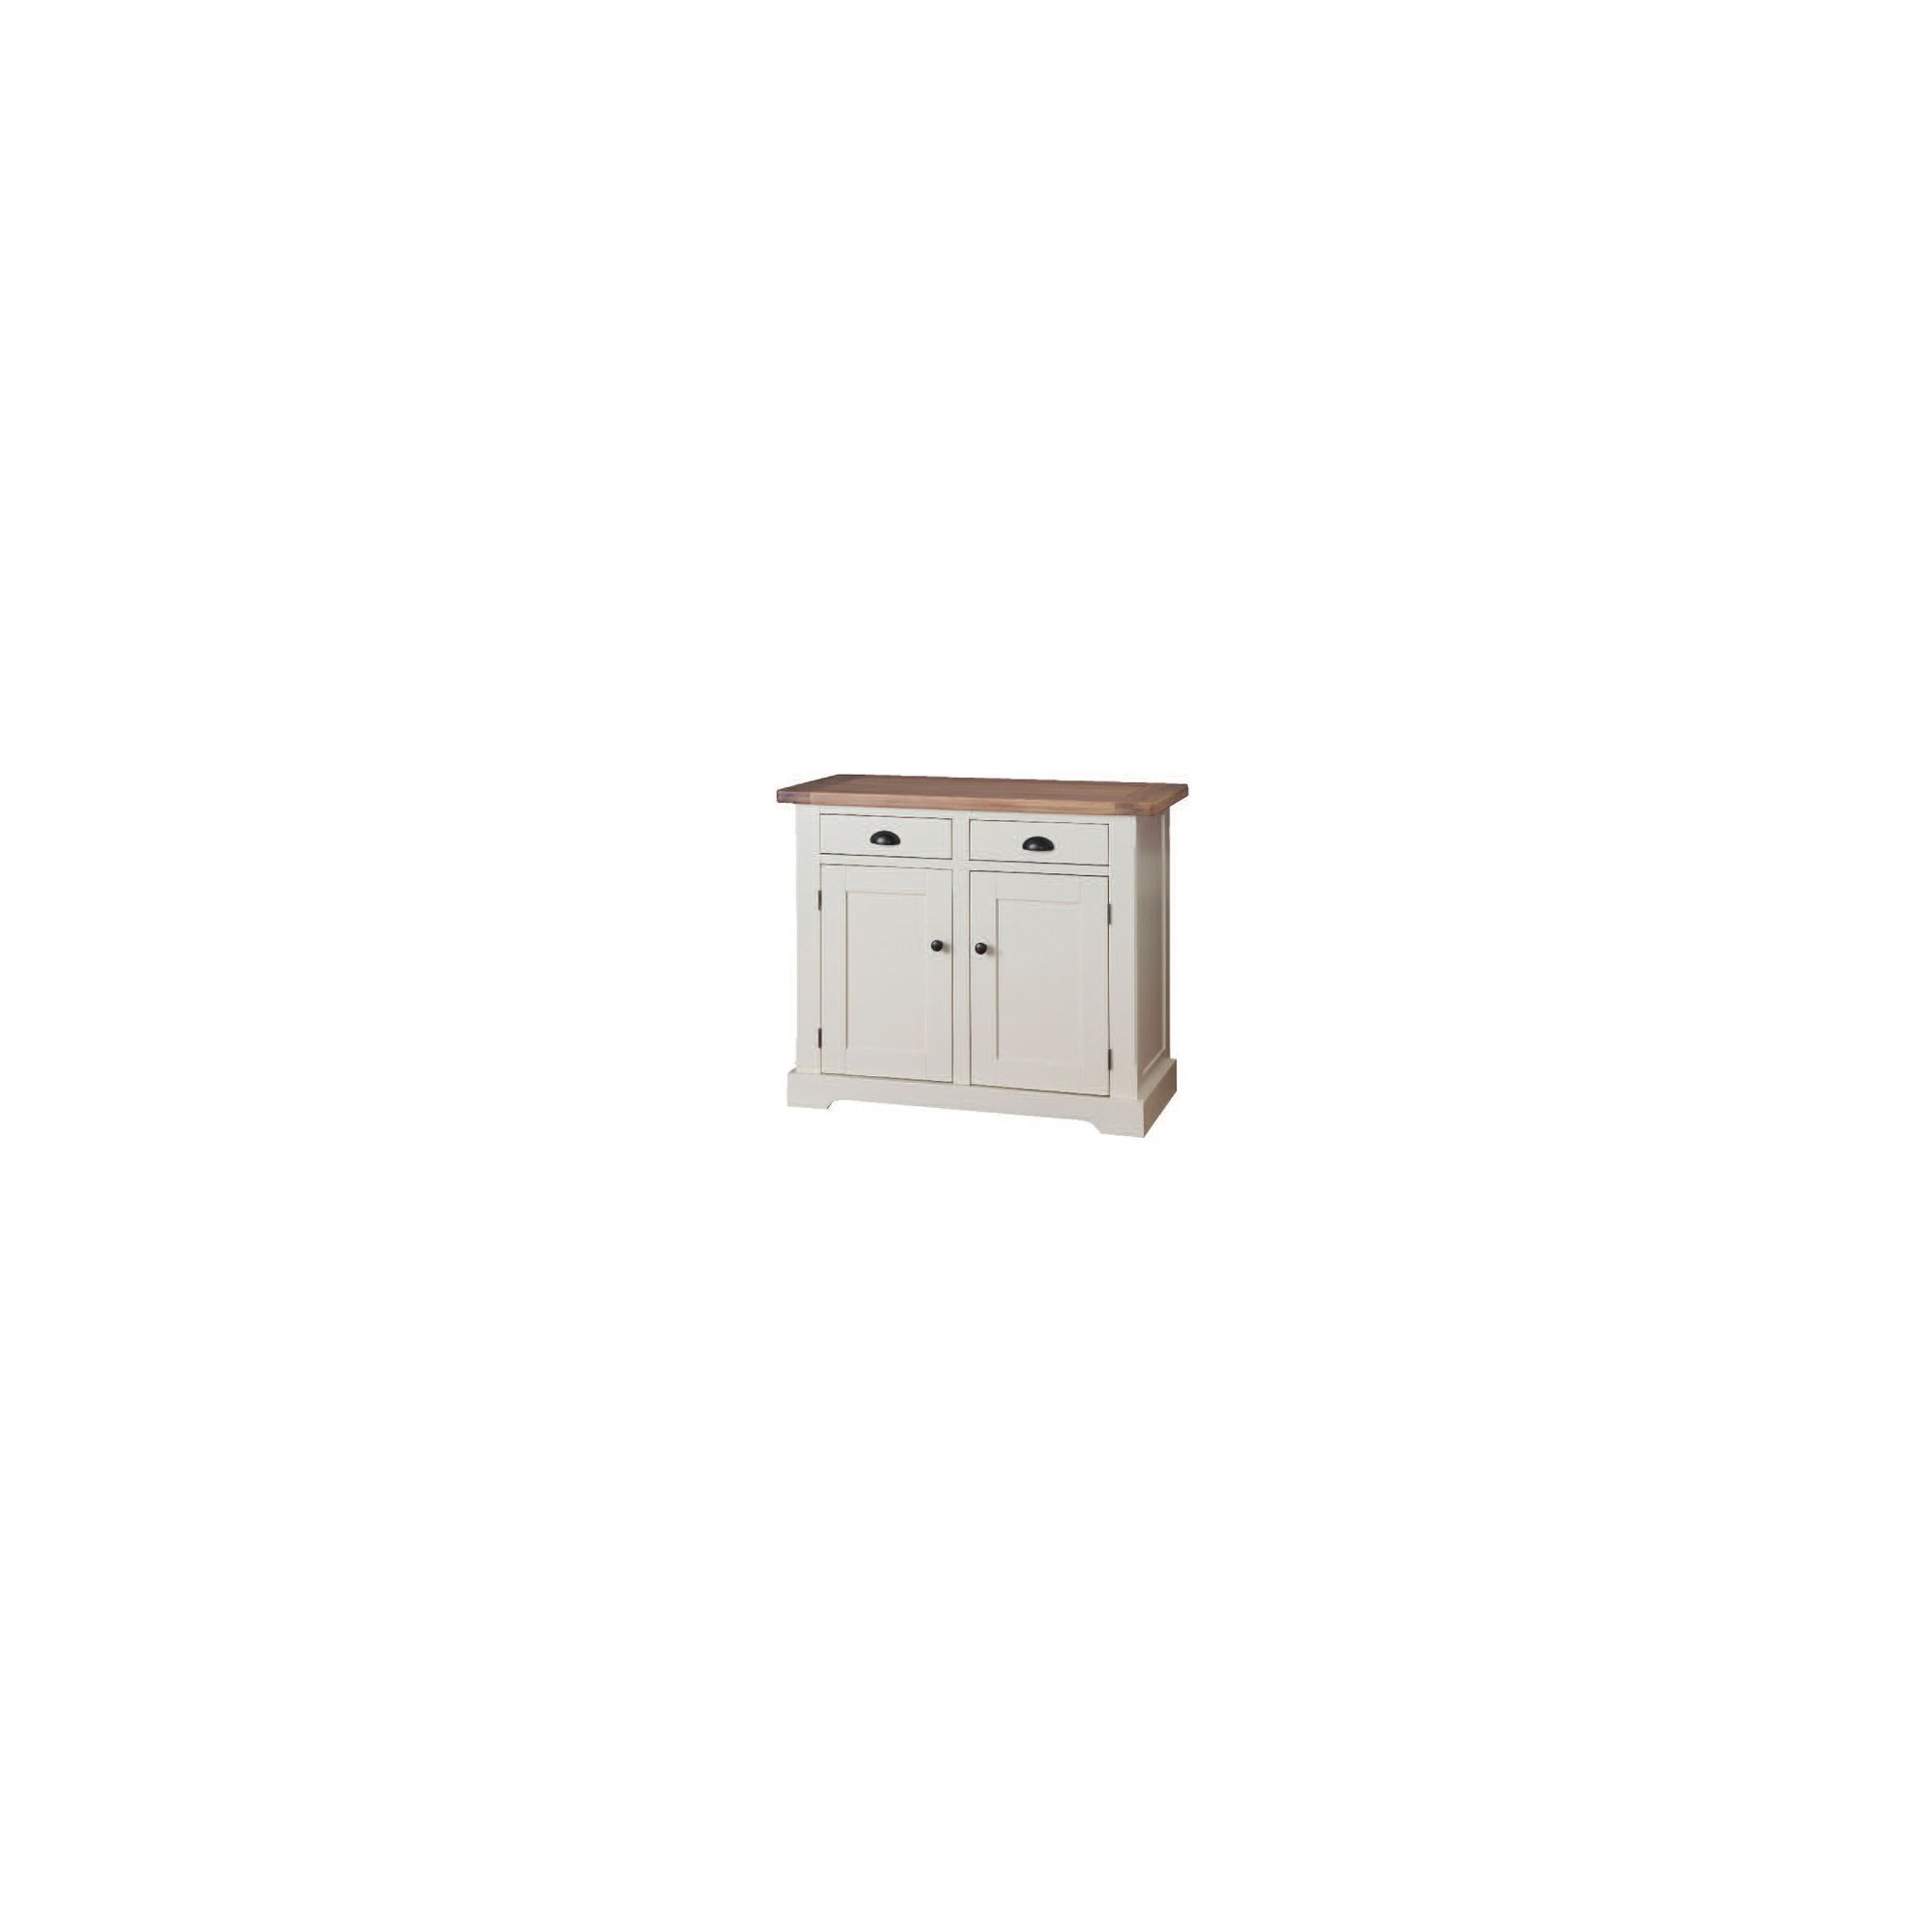 Wilkinson Furniture Buttermere Two Drawer Small Sideboard in Ivory at Tesco Direct